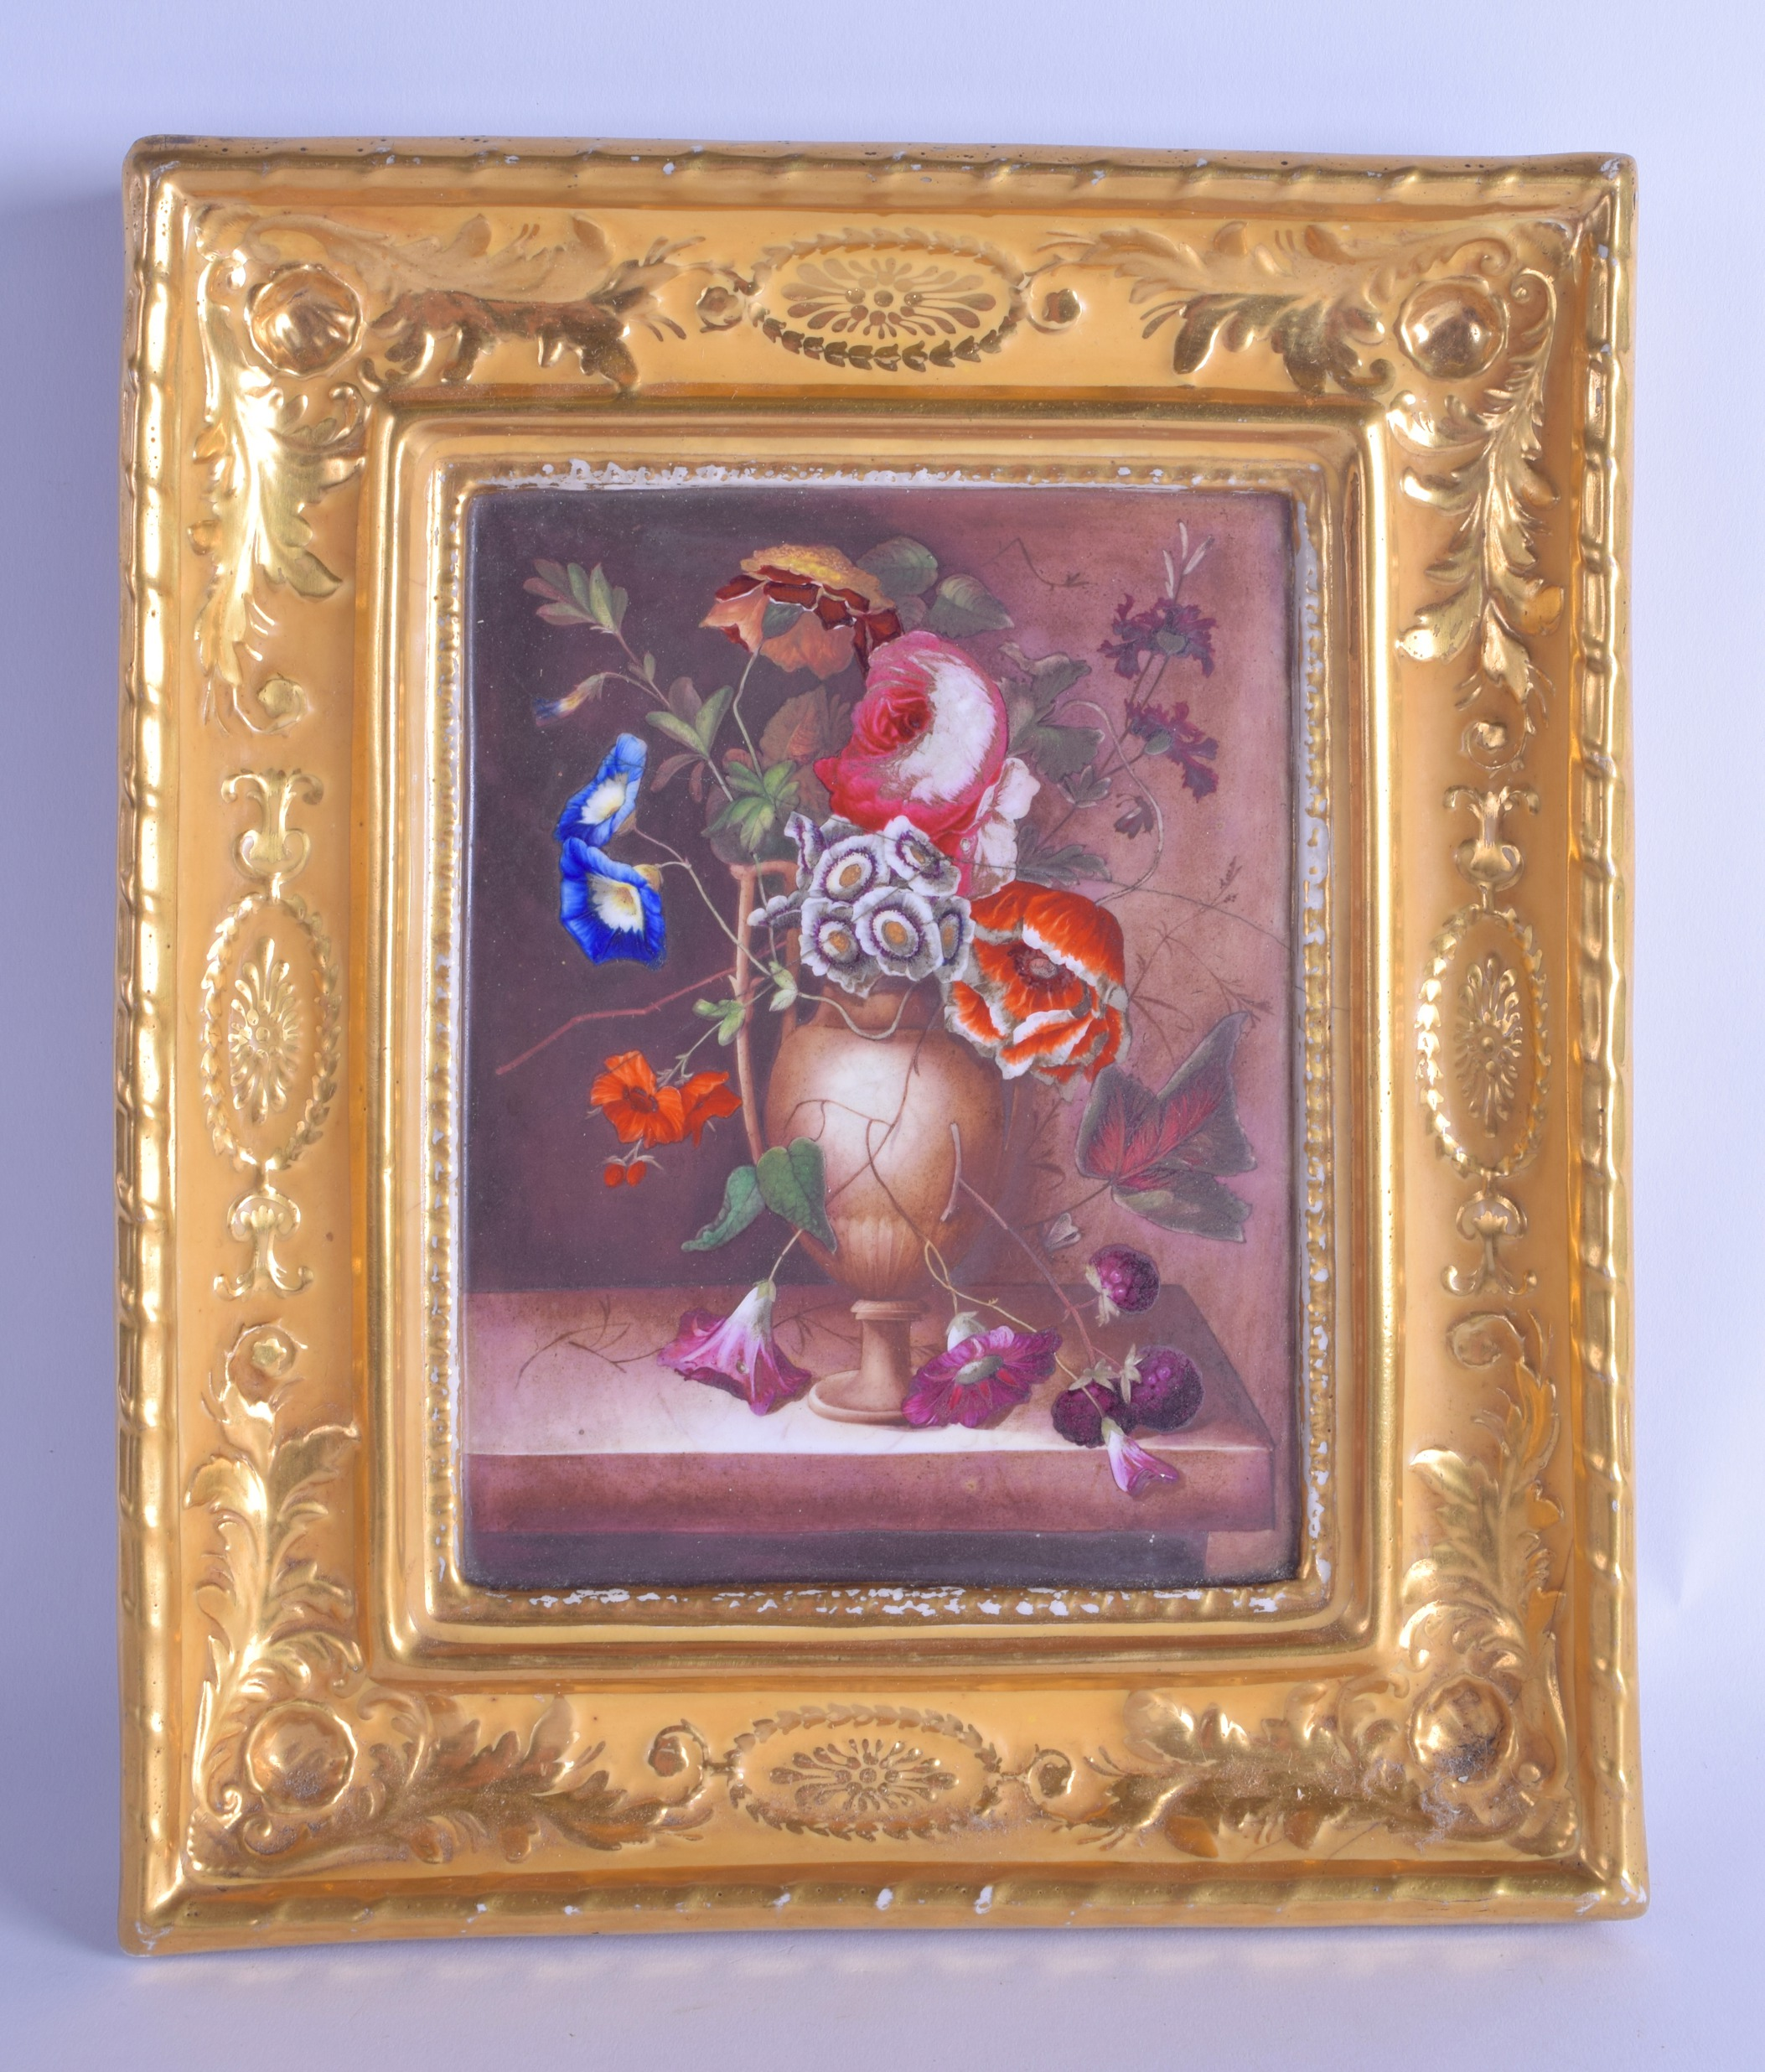 Lot 165 - 19th c. Worcester plaque with integral porcelain frame painted with a vase of flower, the reverse